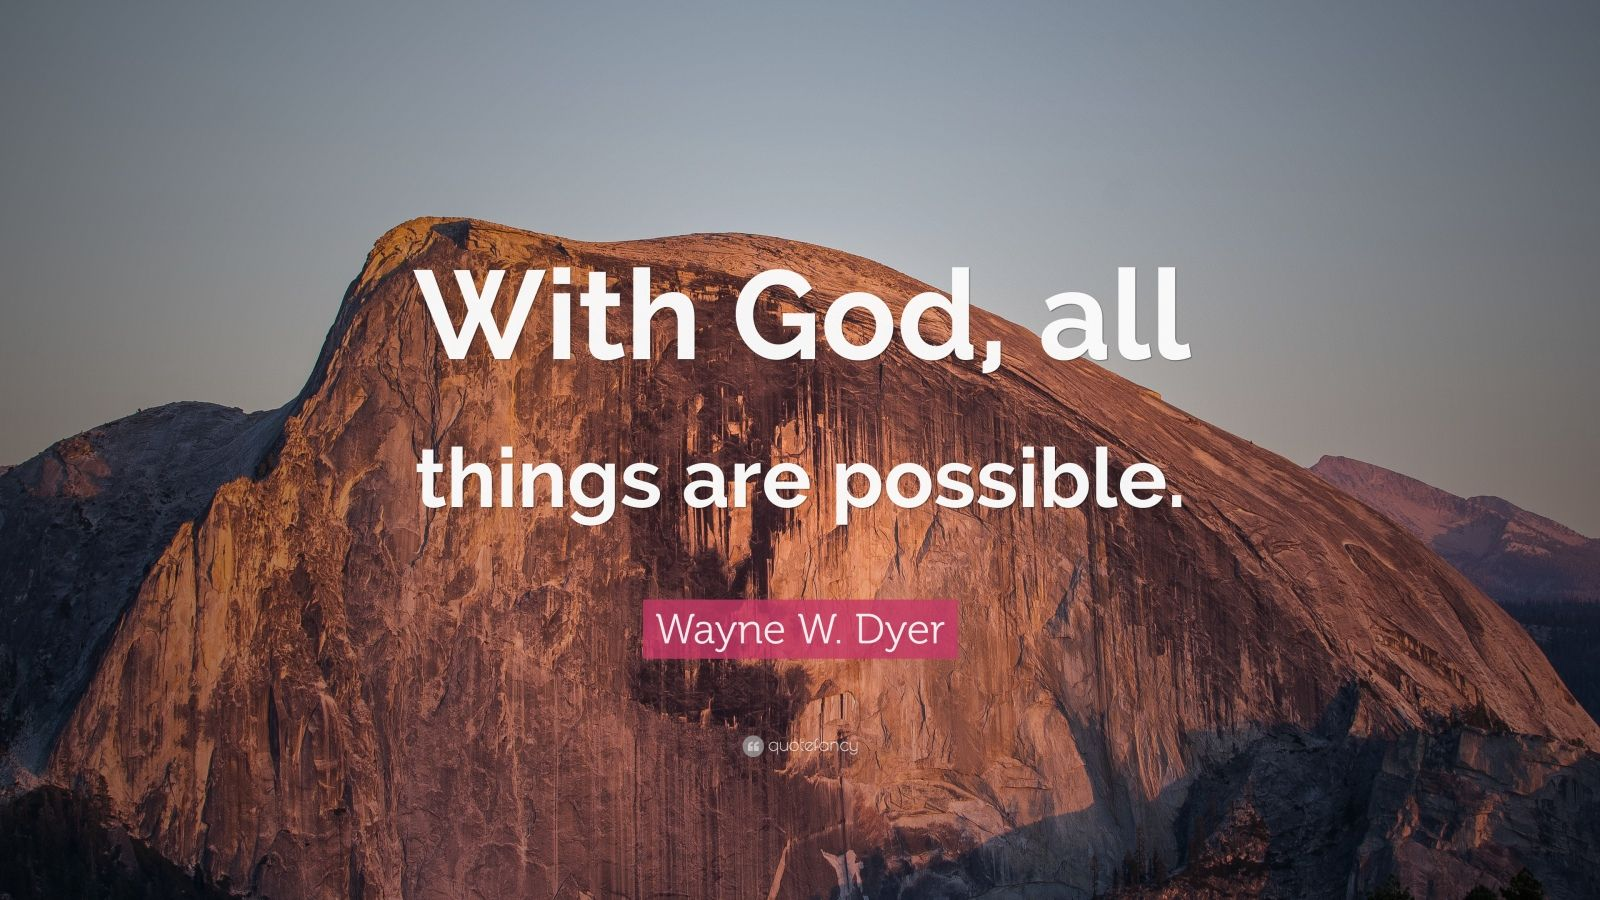 Motivational Life Quotes Wallpapers Wayne W Dyer Quote With God All Things Are Possible